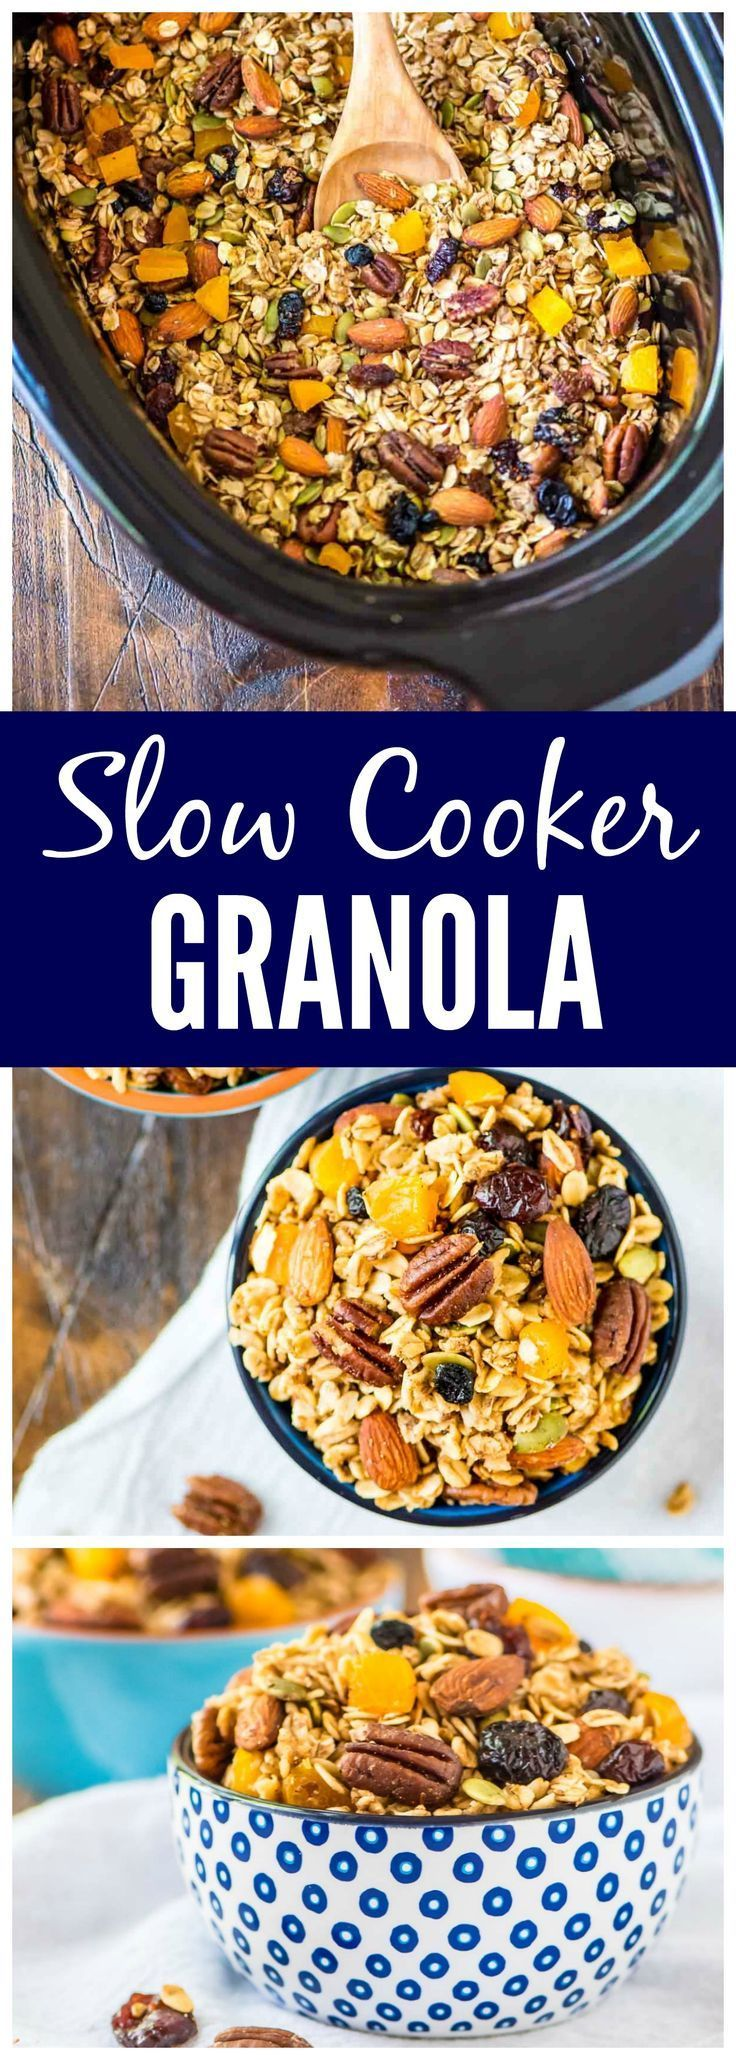 The BEST, easiest homemade granola ever! Crock Pot Granola. Simple, healthy, and the slow cooker does the work. Add any of your favorite fruits, nuts, and chocolate chips. DELICIOUS. {vegan, dairy free, gluten free} Recipe at http://wellplated.com /wellplated/